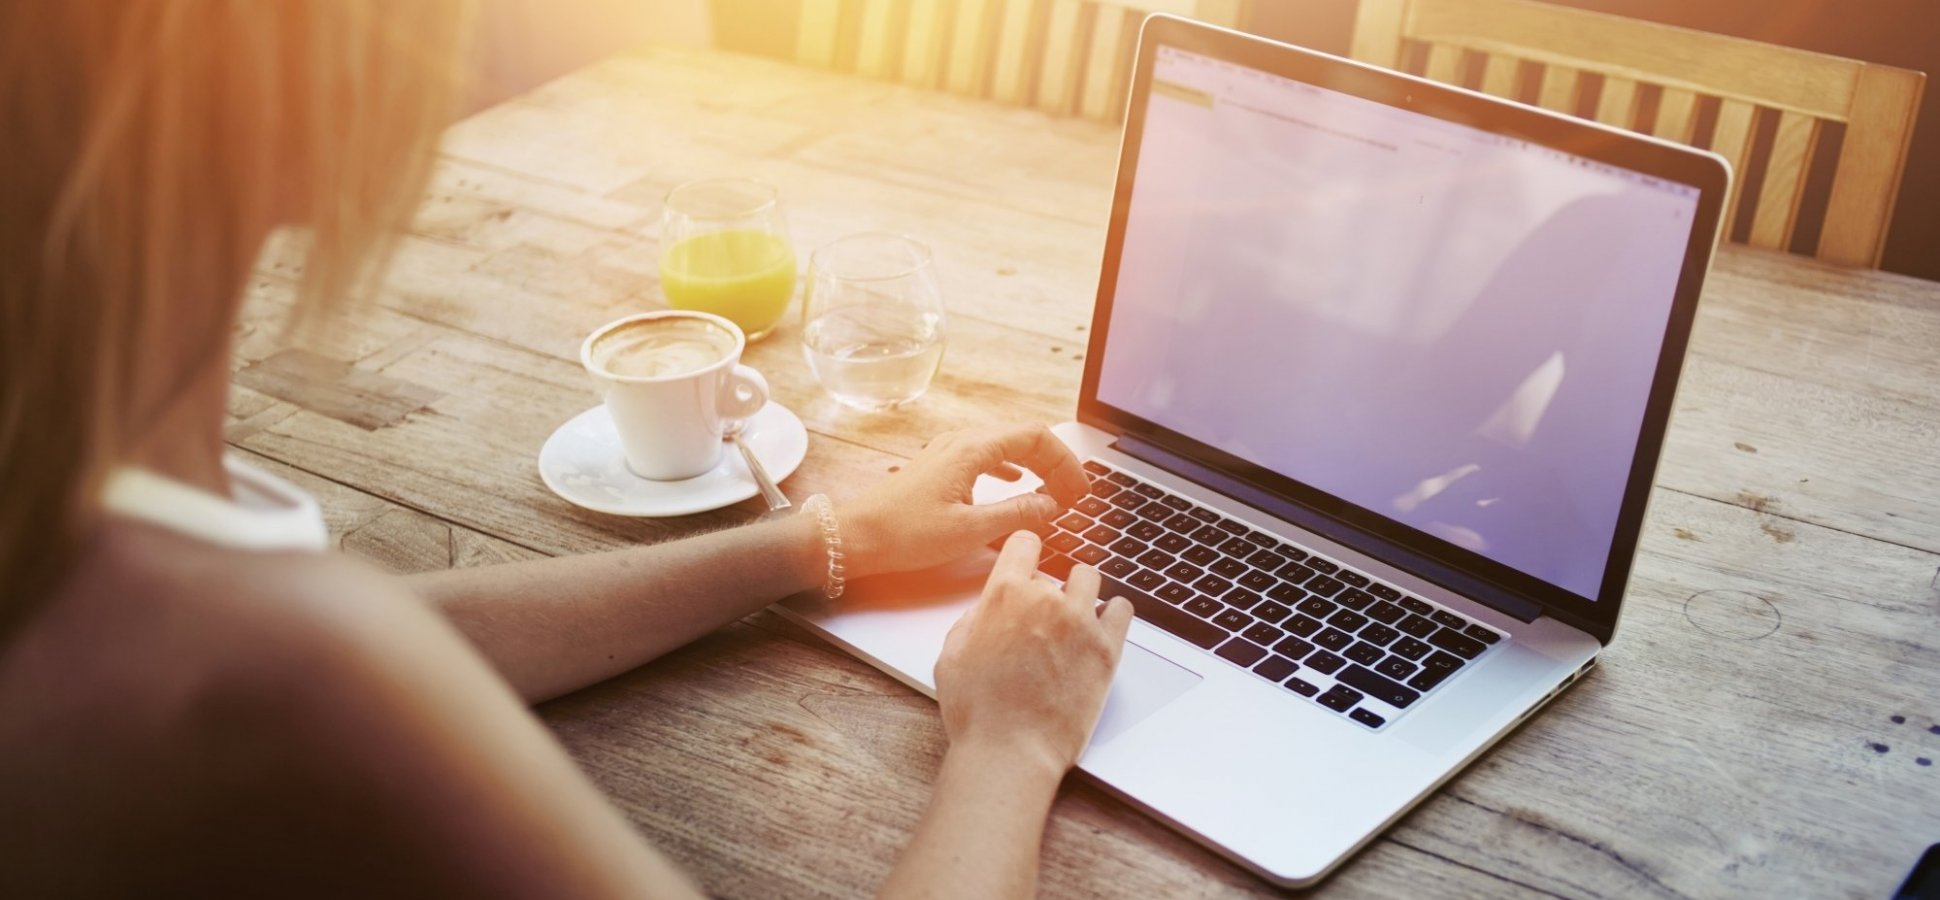 No Office? No Problem. Run Your Company Remotely With These 4 Tools